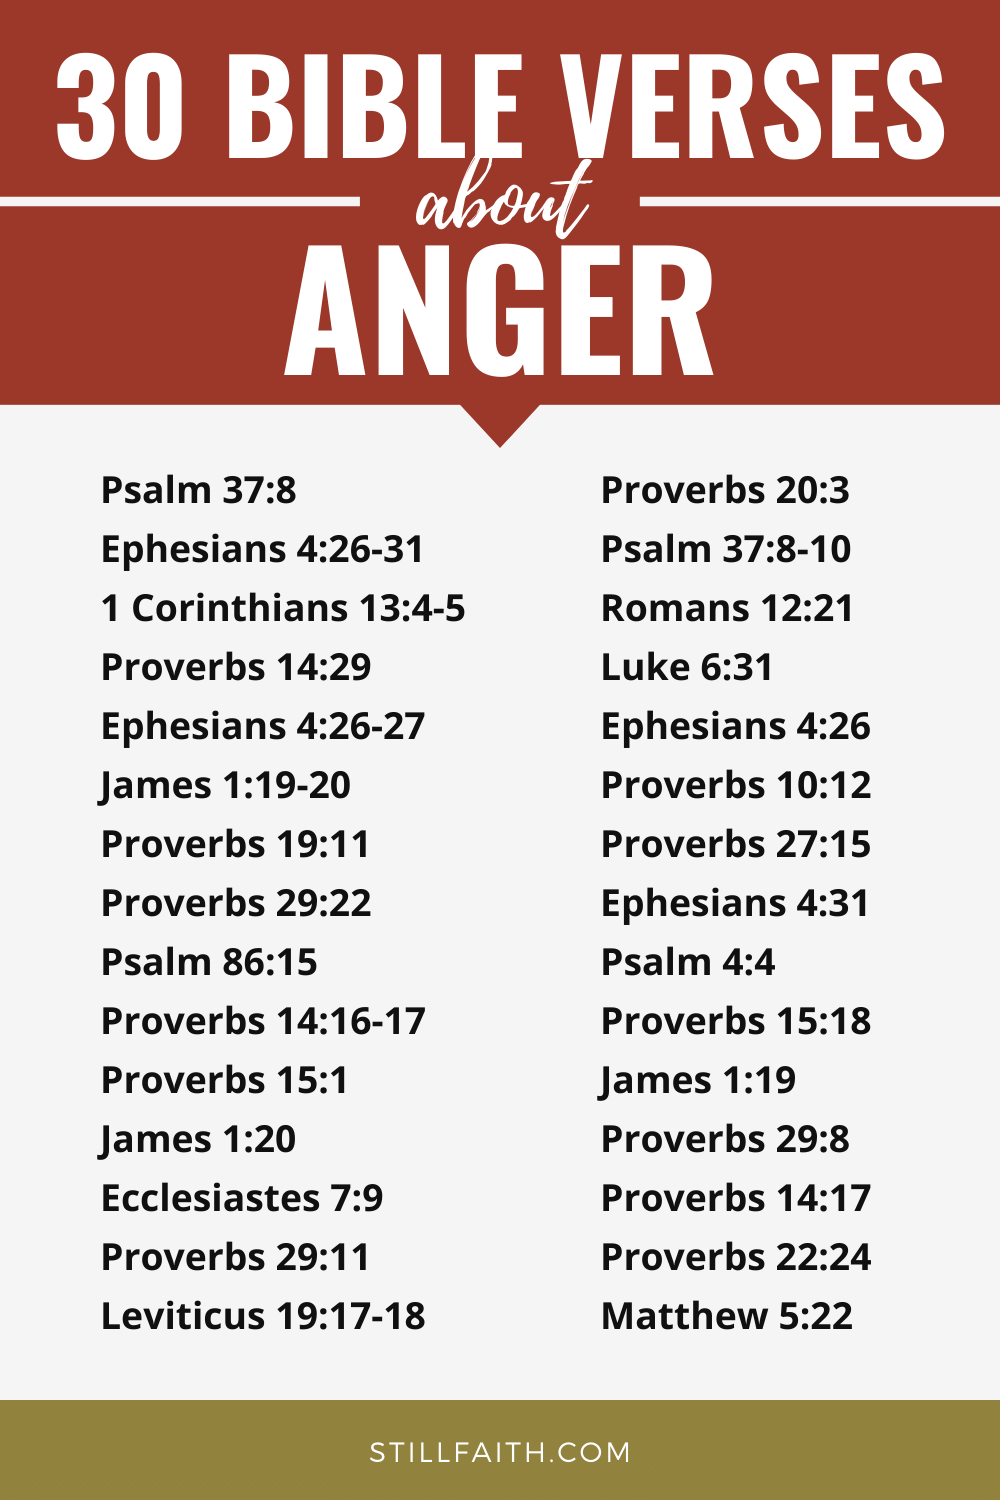 131 Bible Verses about Anger